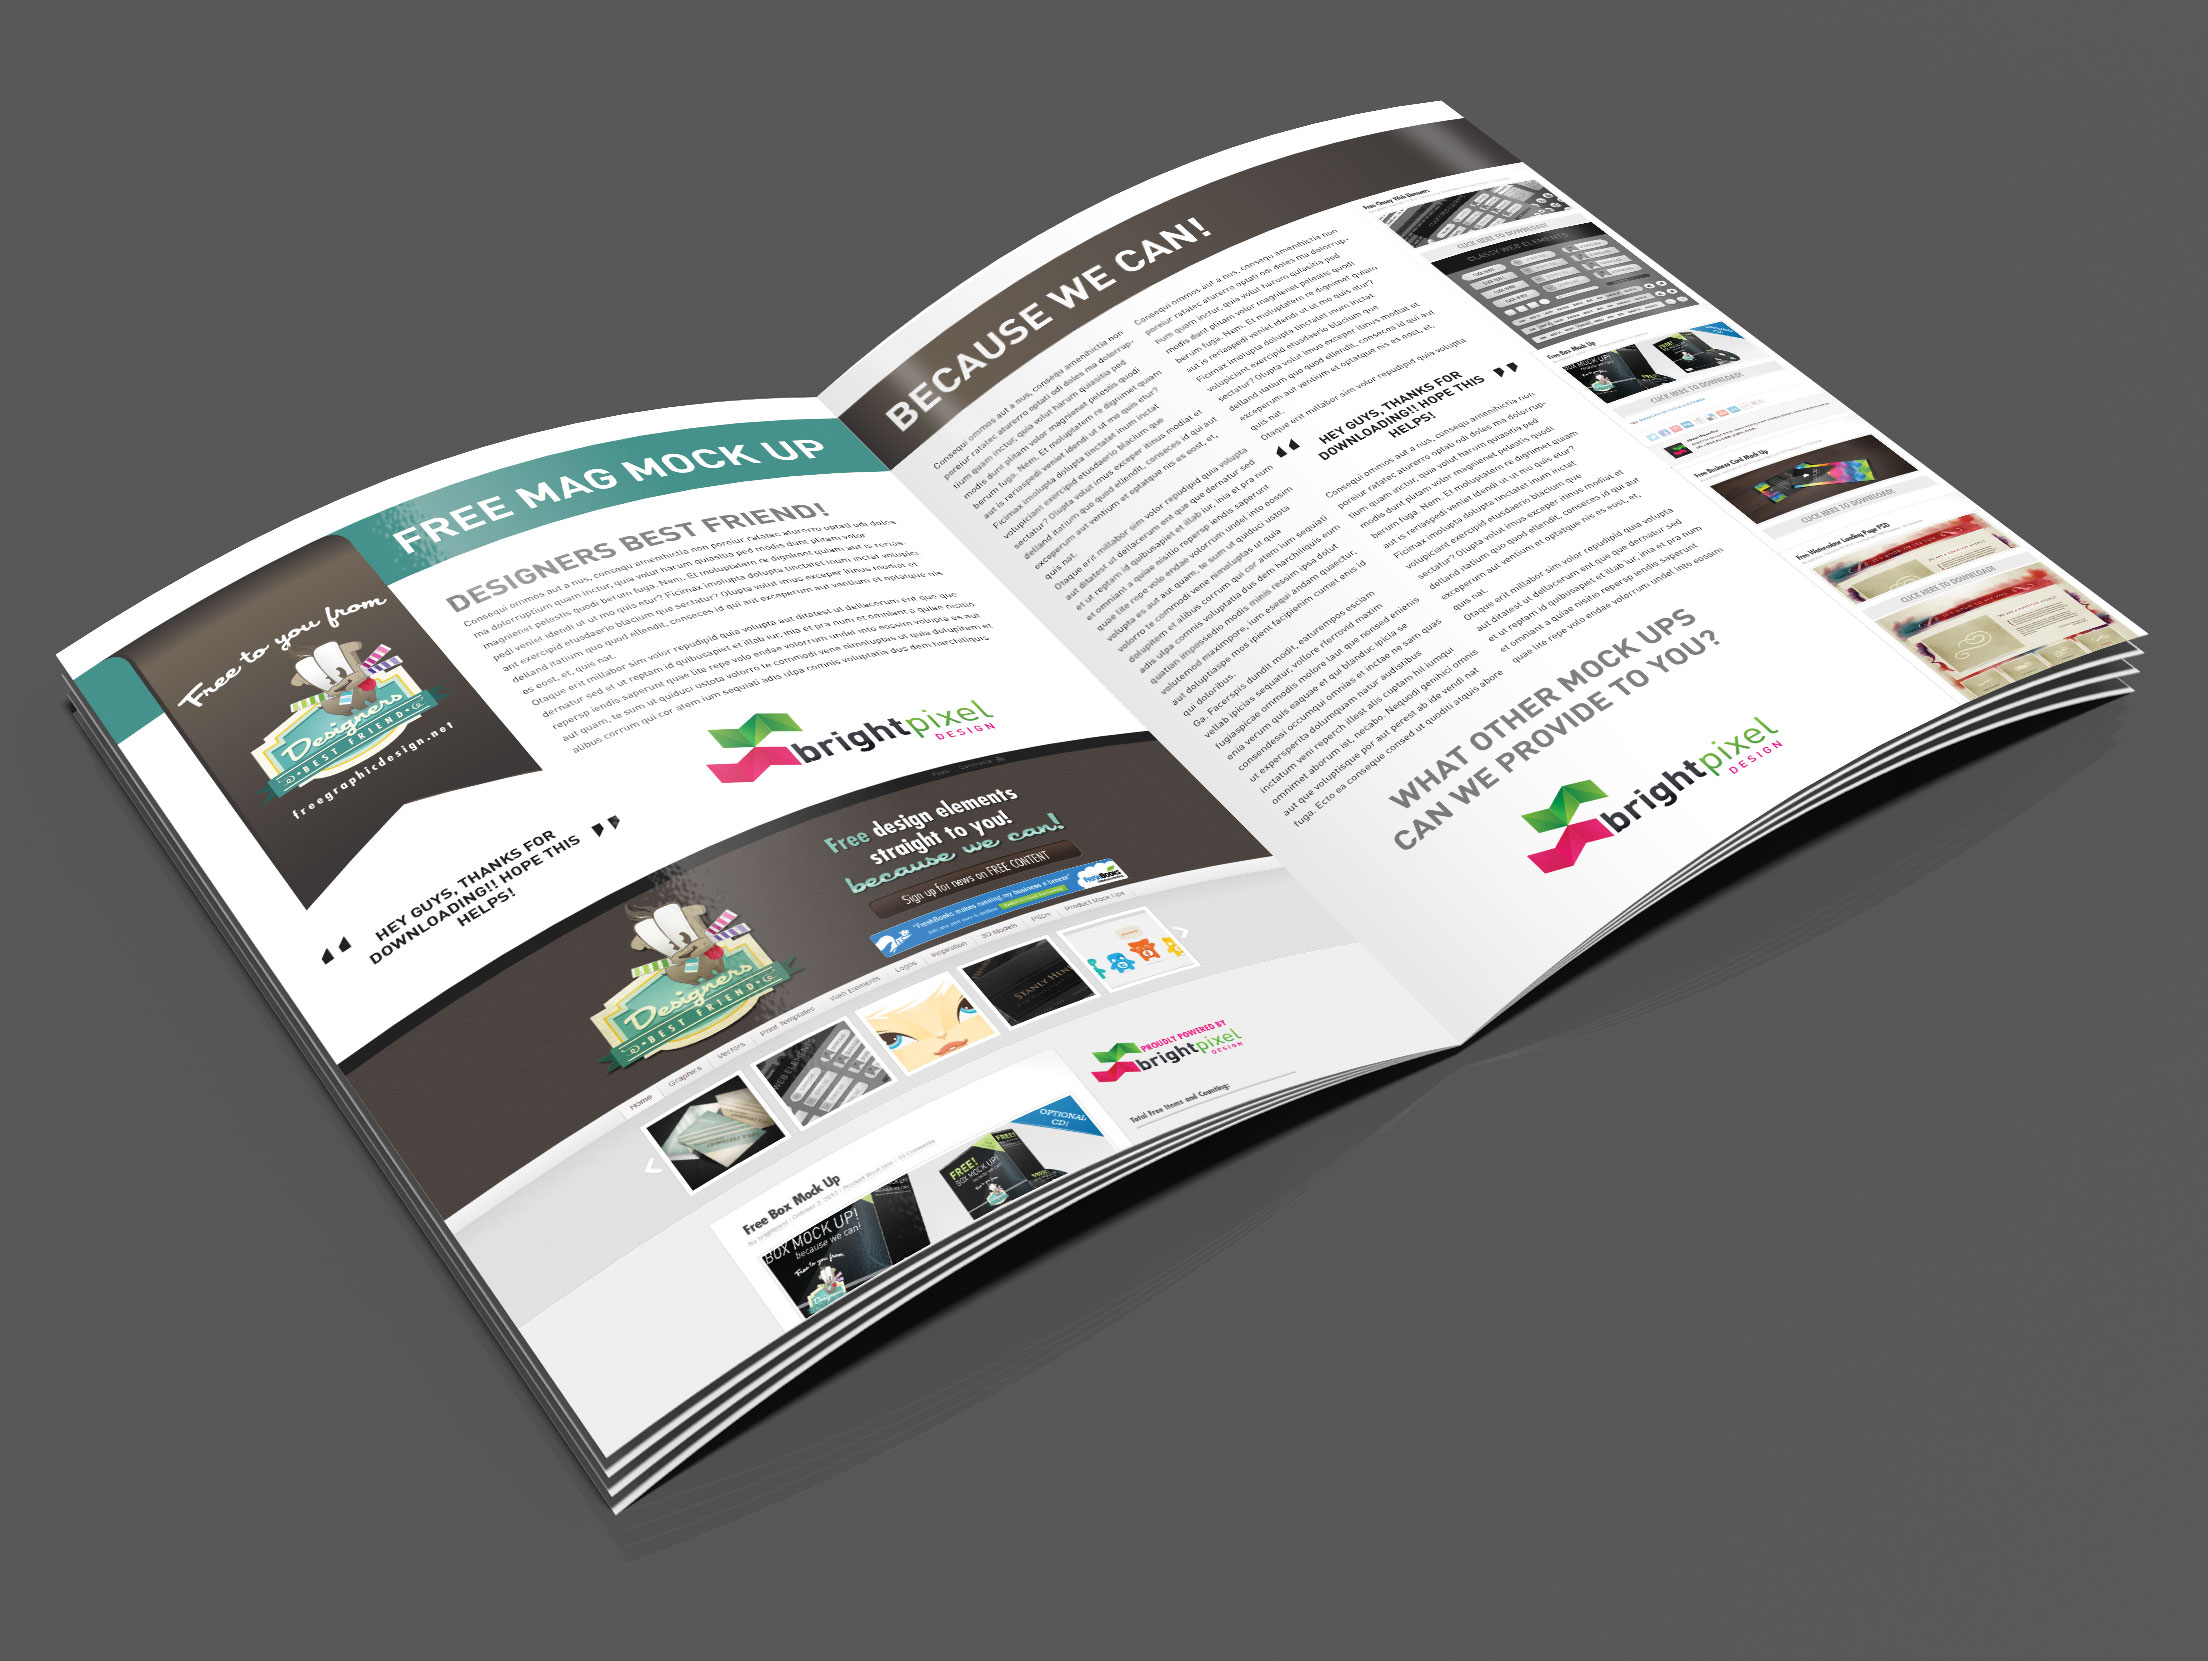 Magazine Spread Mockup Smartlayers